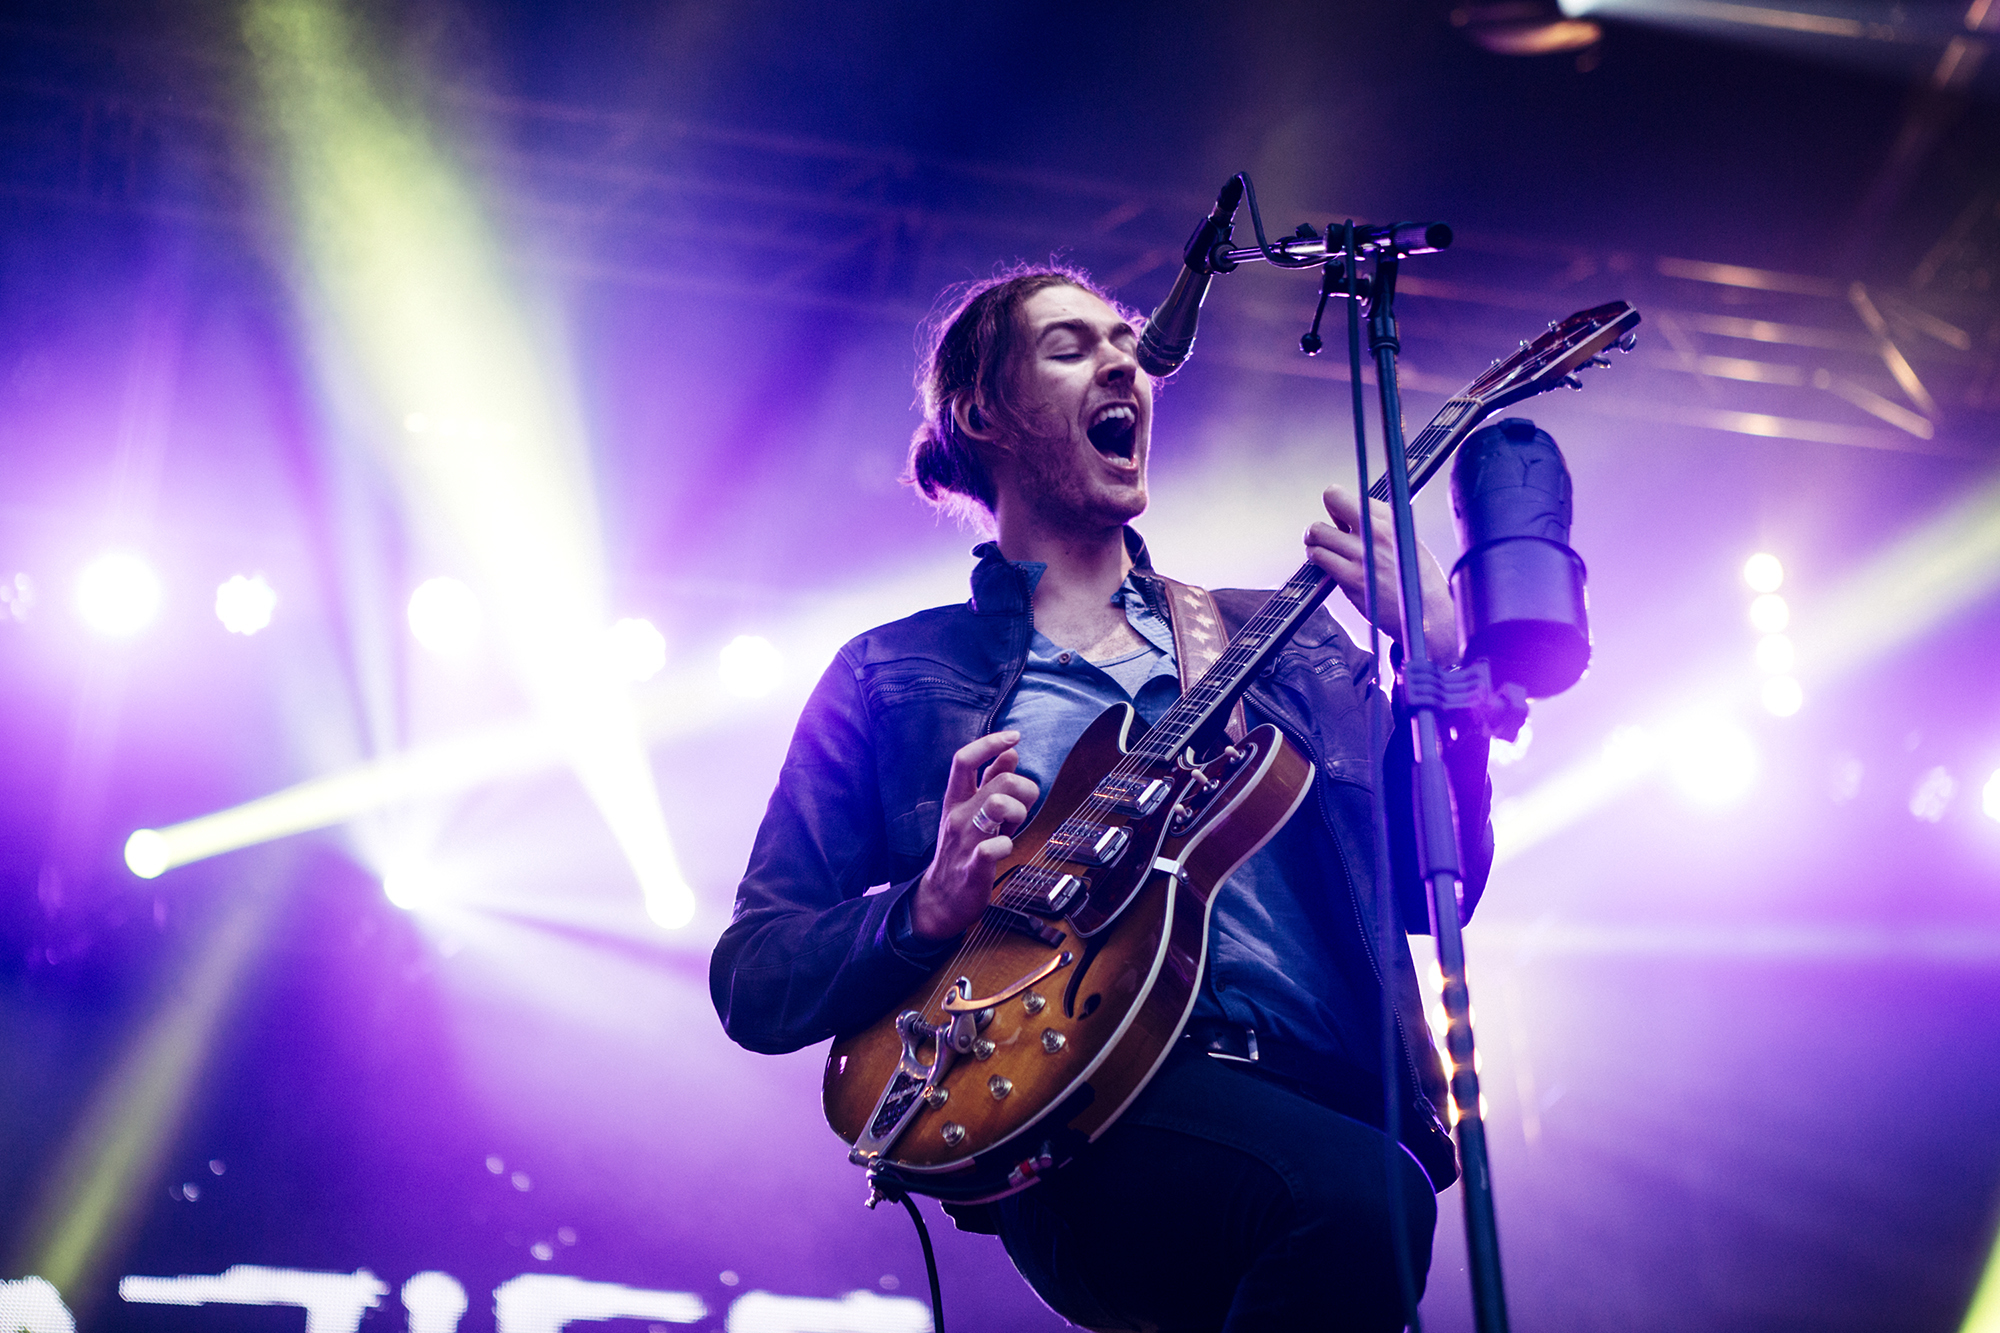 Hozier plays at the Bumbershoot Music